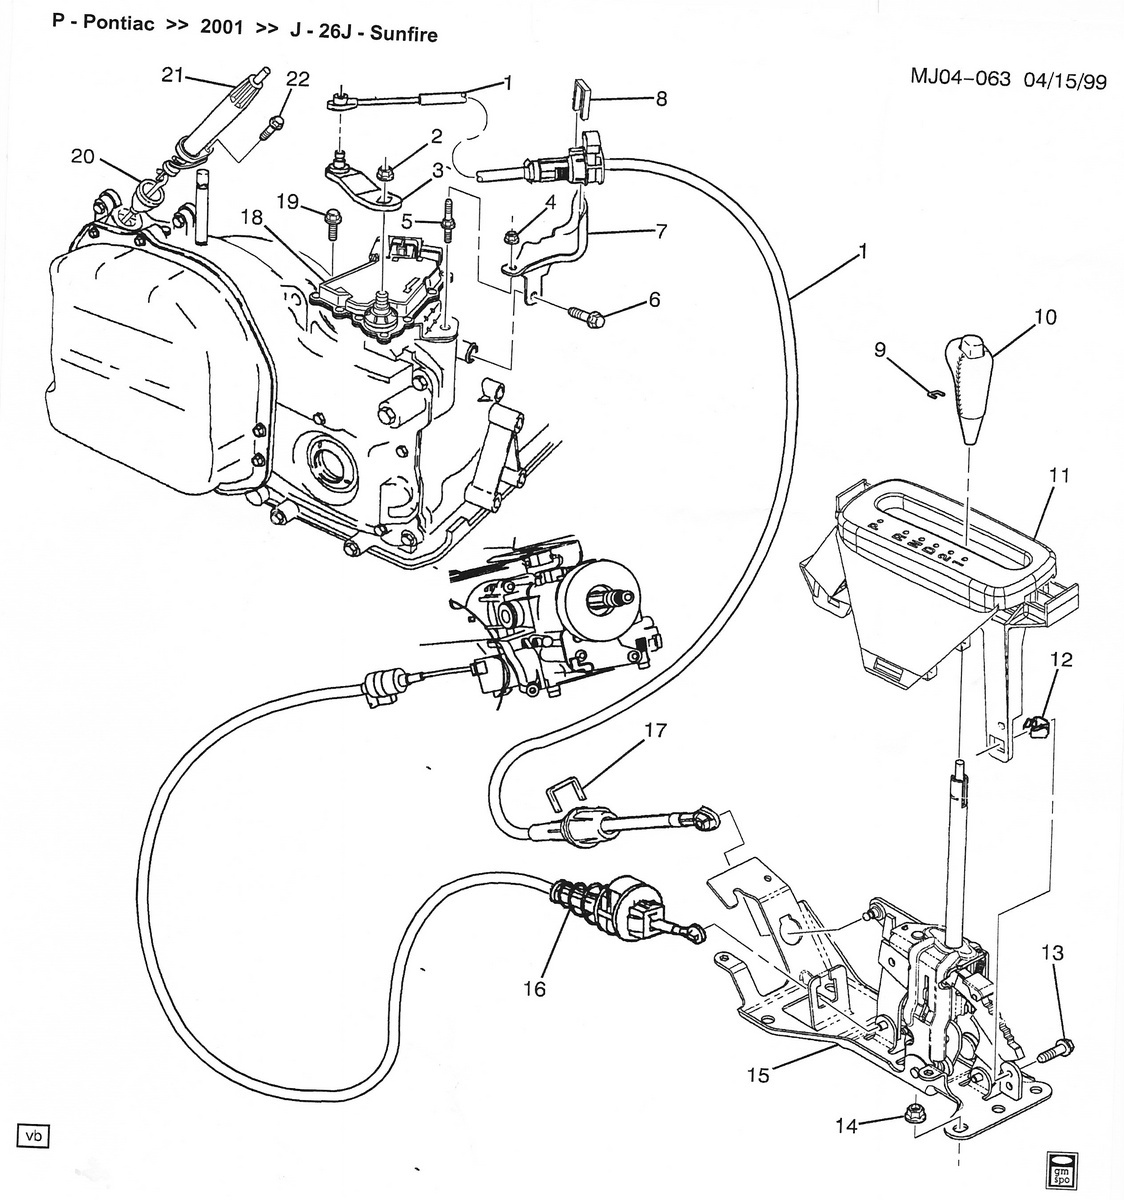 2005 chevy cobalt manual transmission diagram